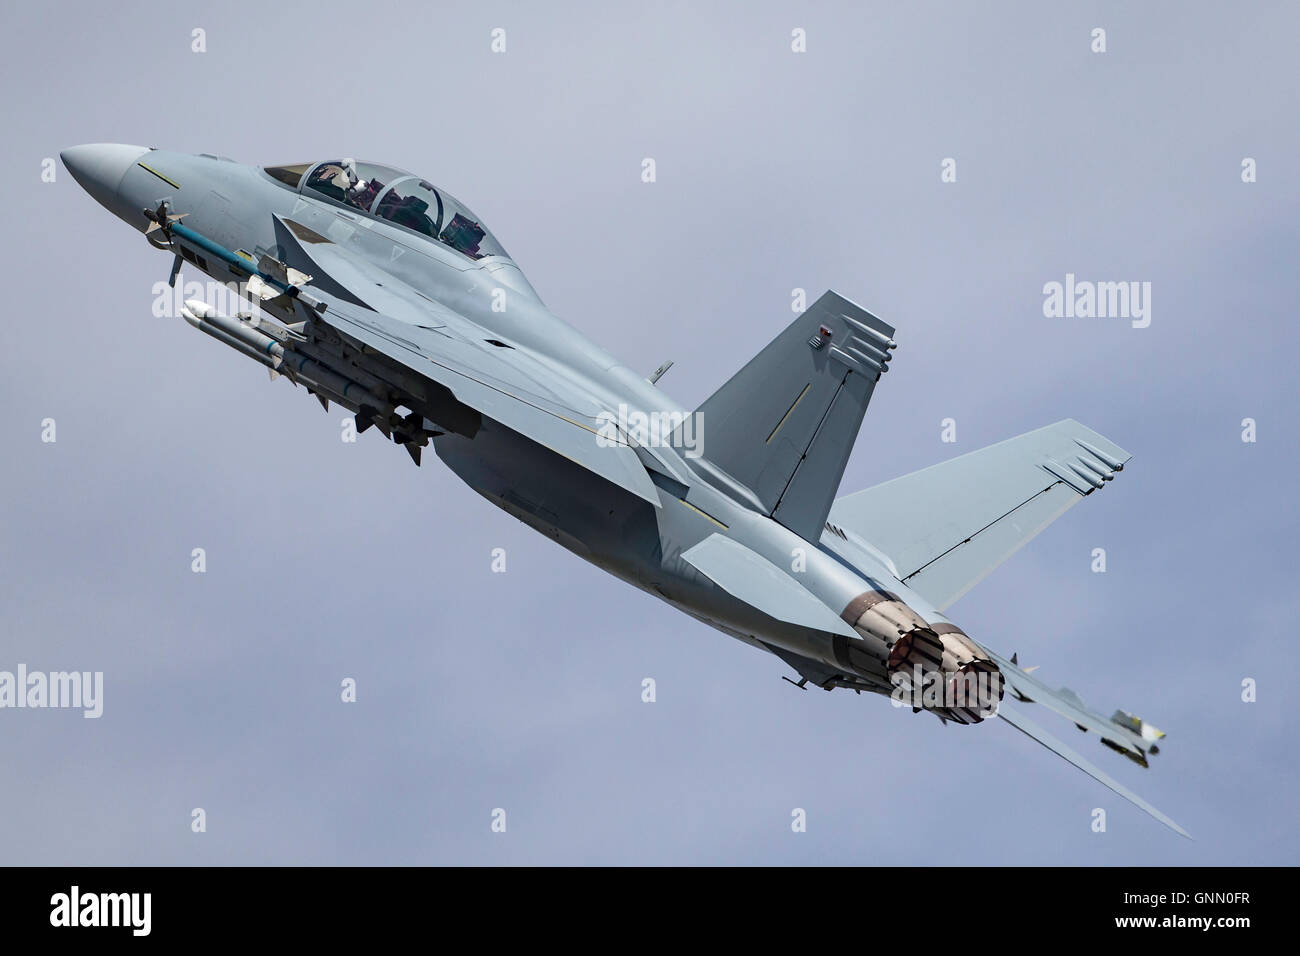 United States Navy Boeing F/A-18F Super Hornet chasseur multirôle. Banque D'Images